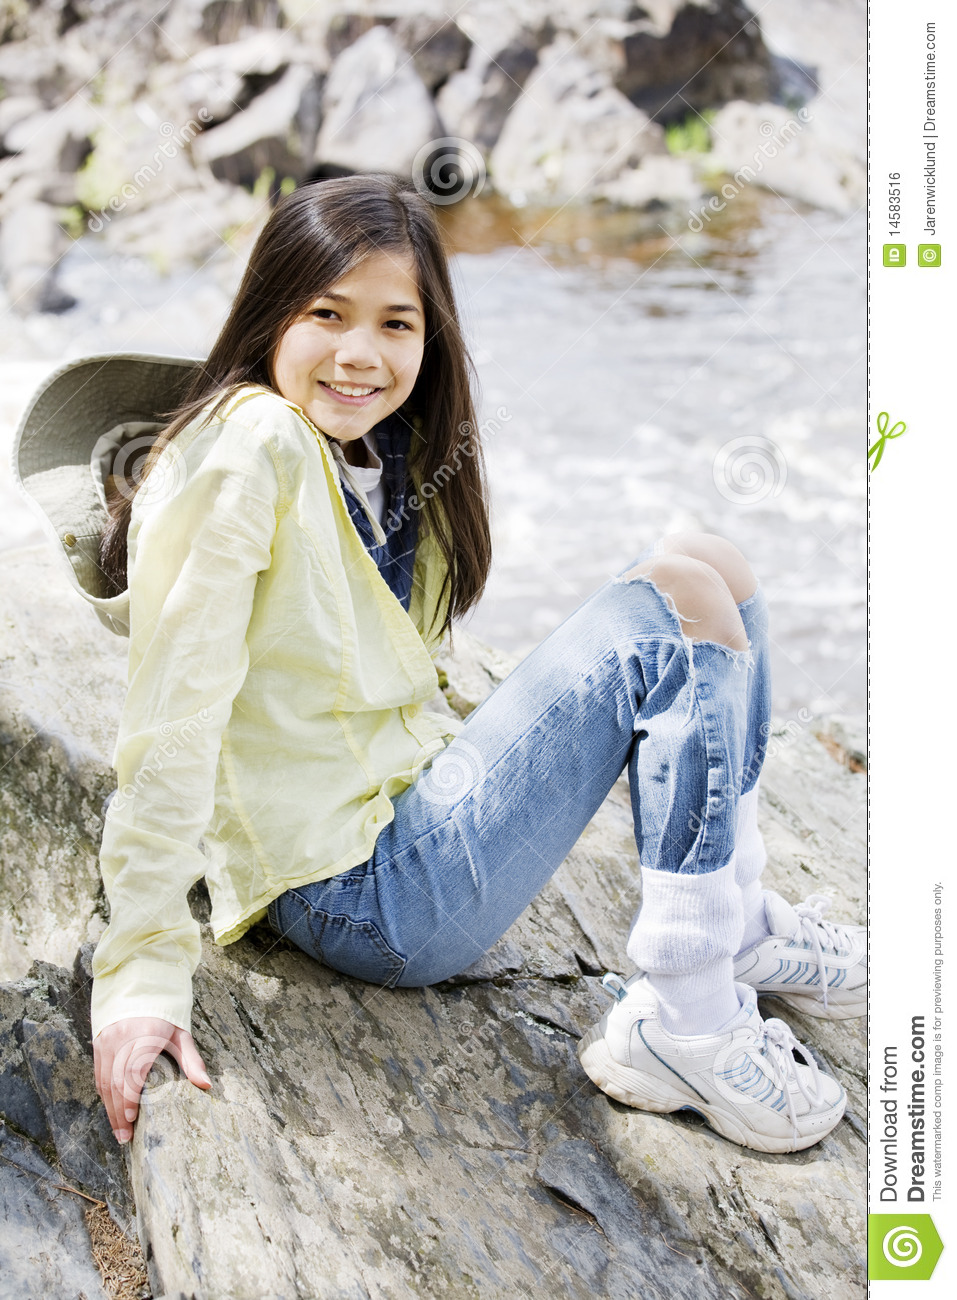 Too small! girl sitting on rock hot,nice